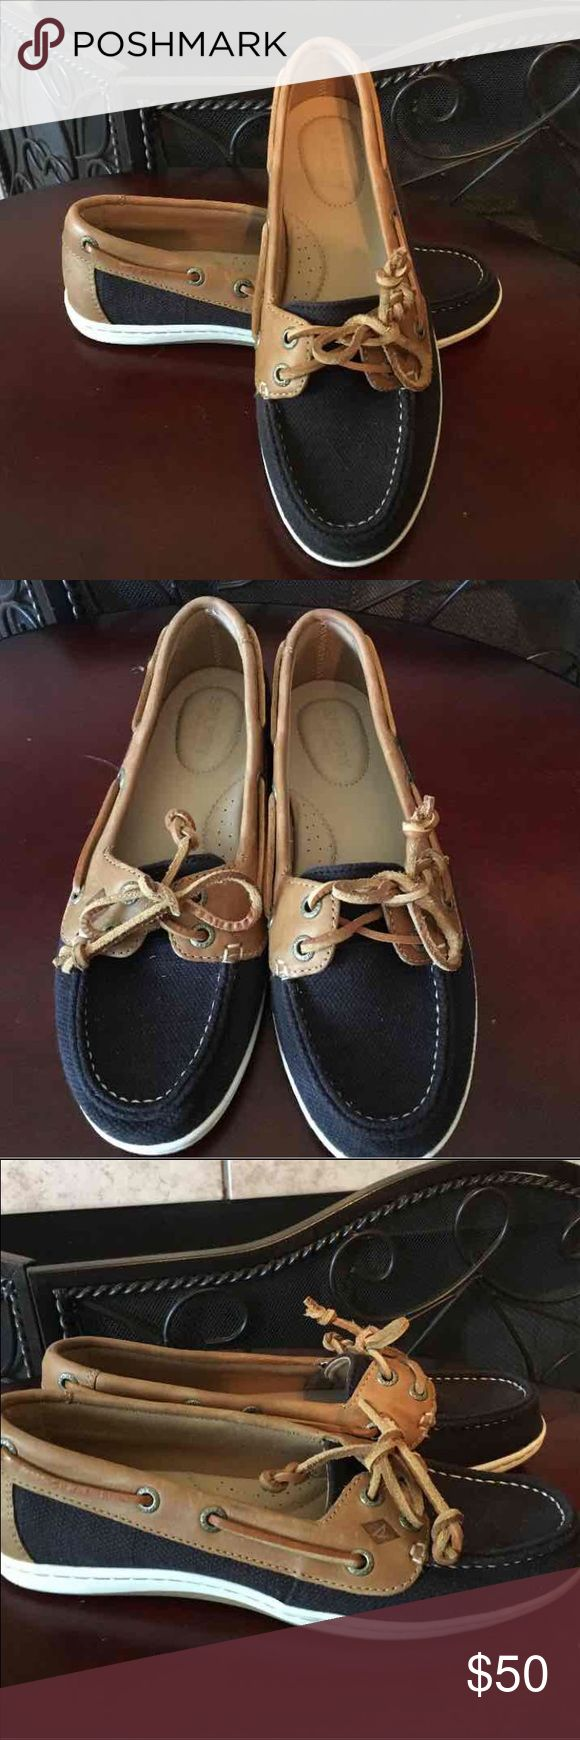 Women's Sperry Top Sider Cute black sperry boat shoes. Worn once, look new Sperry Top-Sider Shoes Flats & Loafers